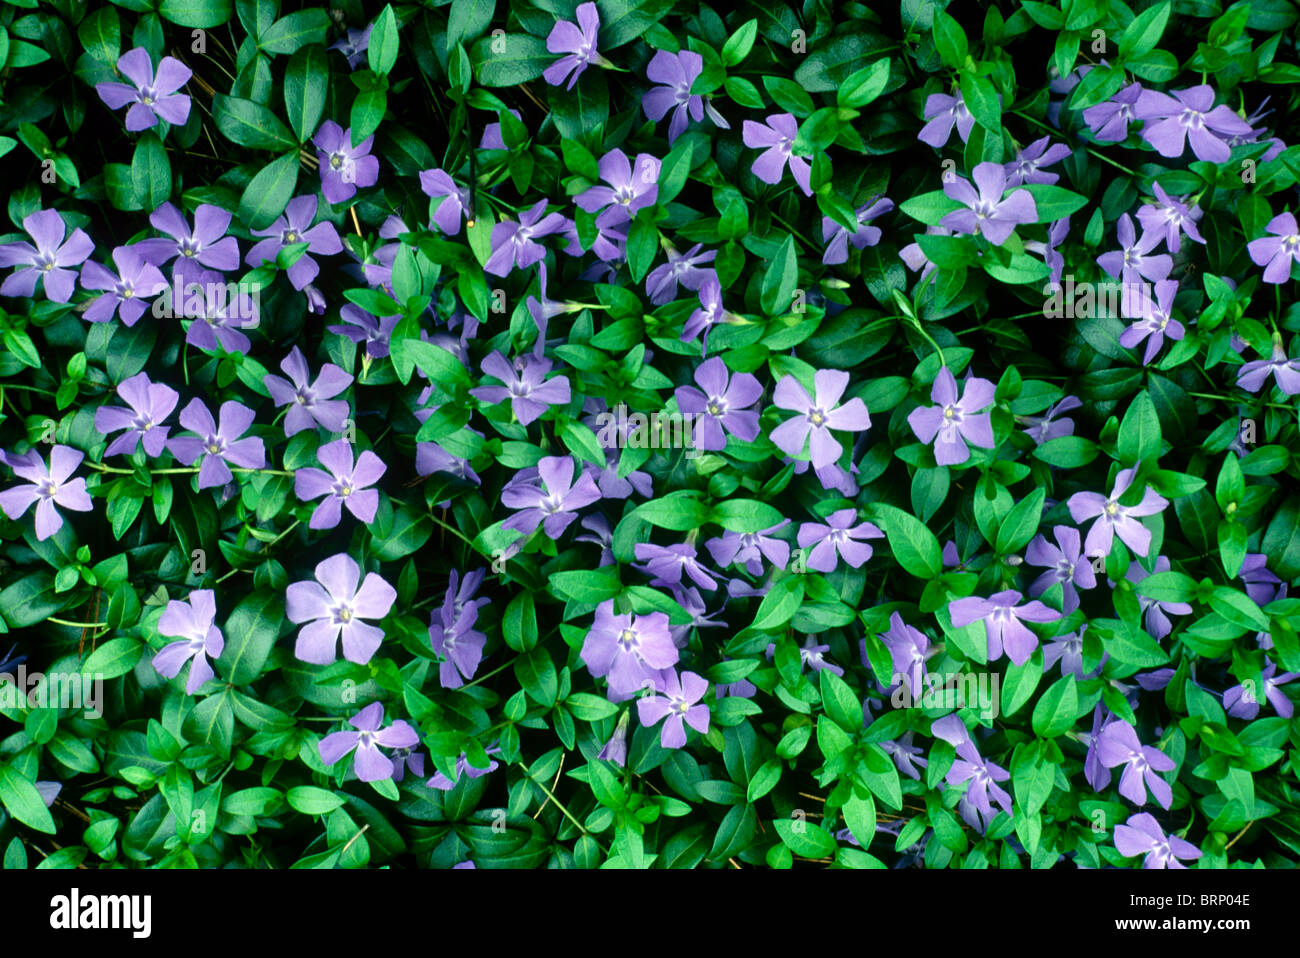 purple vinca minor or periwinkle blooms making a green flowered, Natural flower